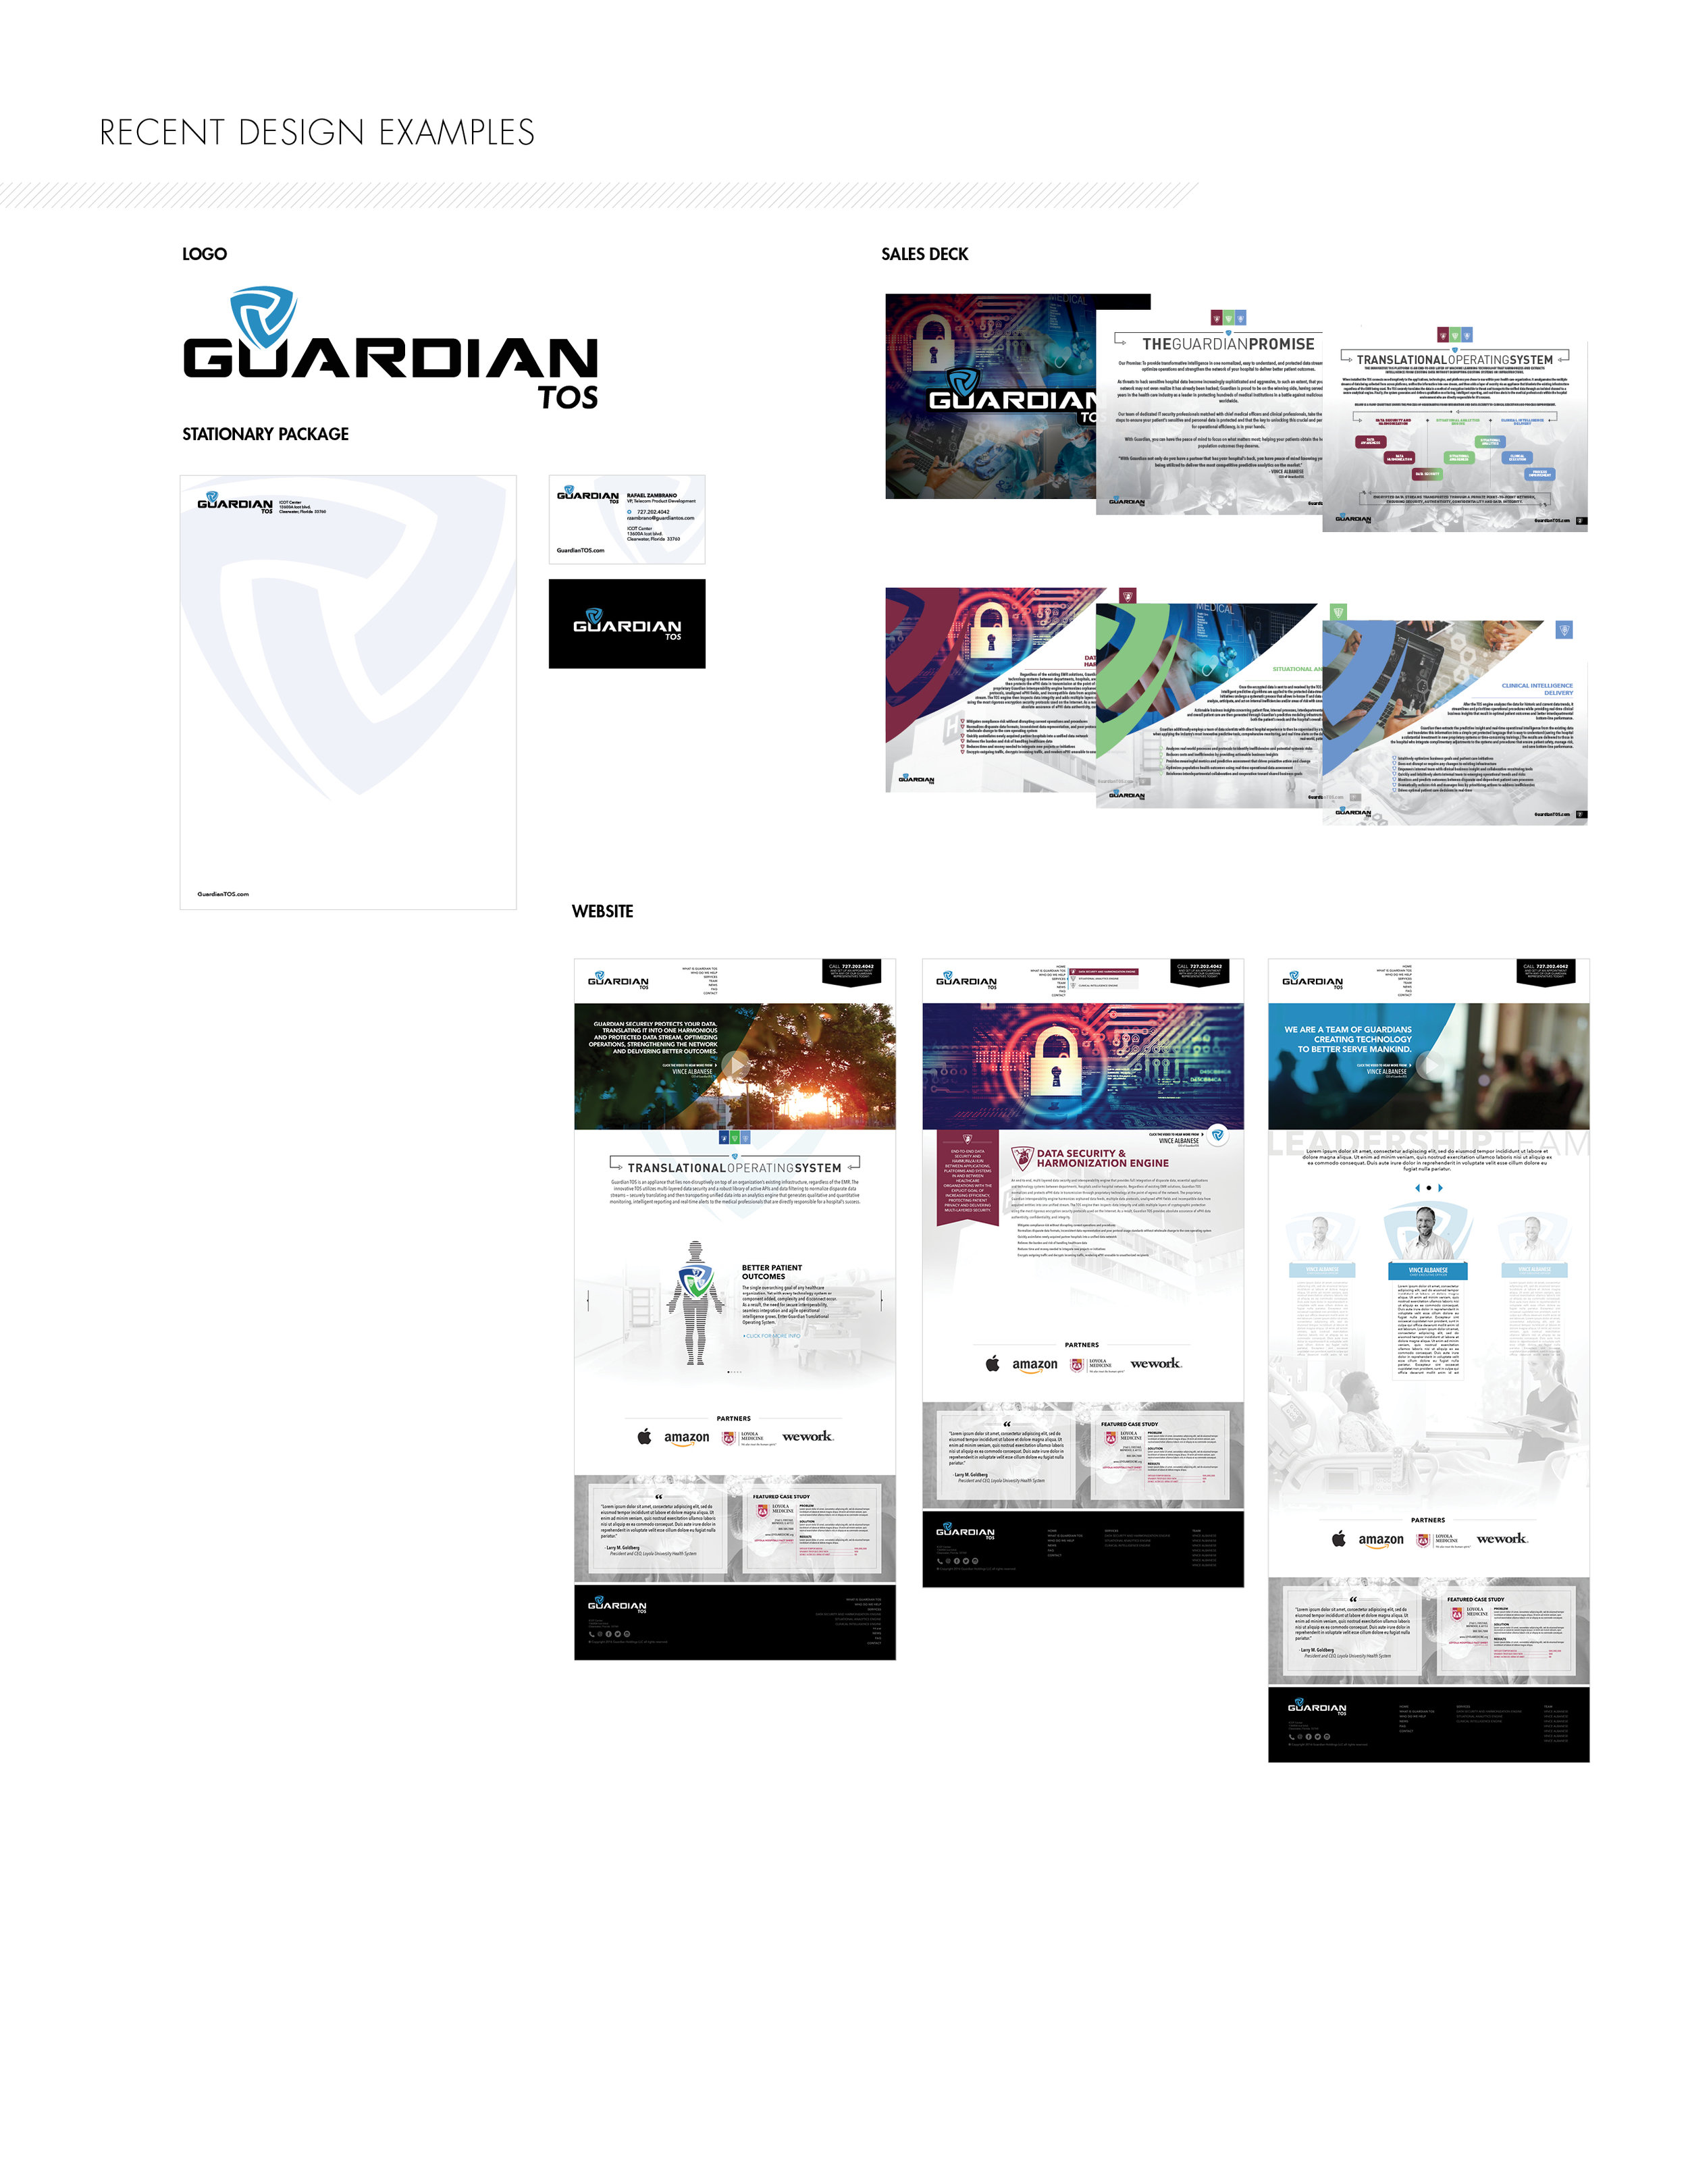 Guardian TOS Designs